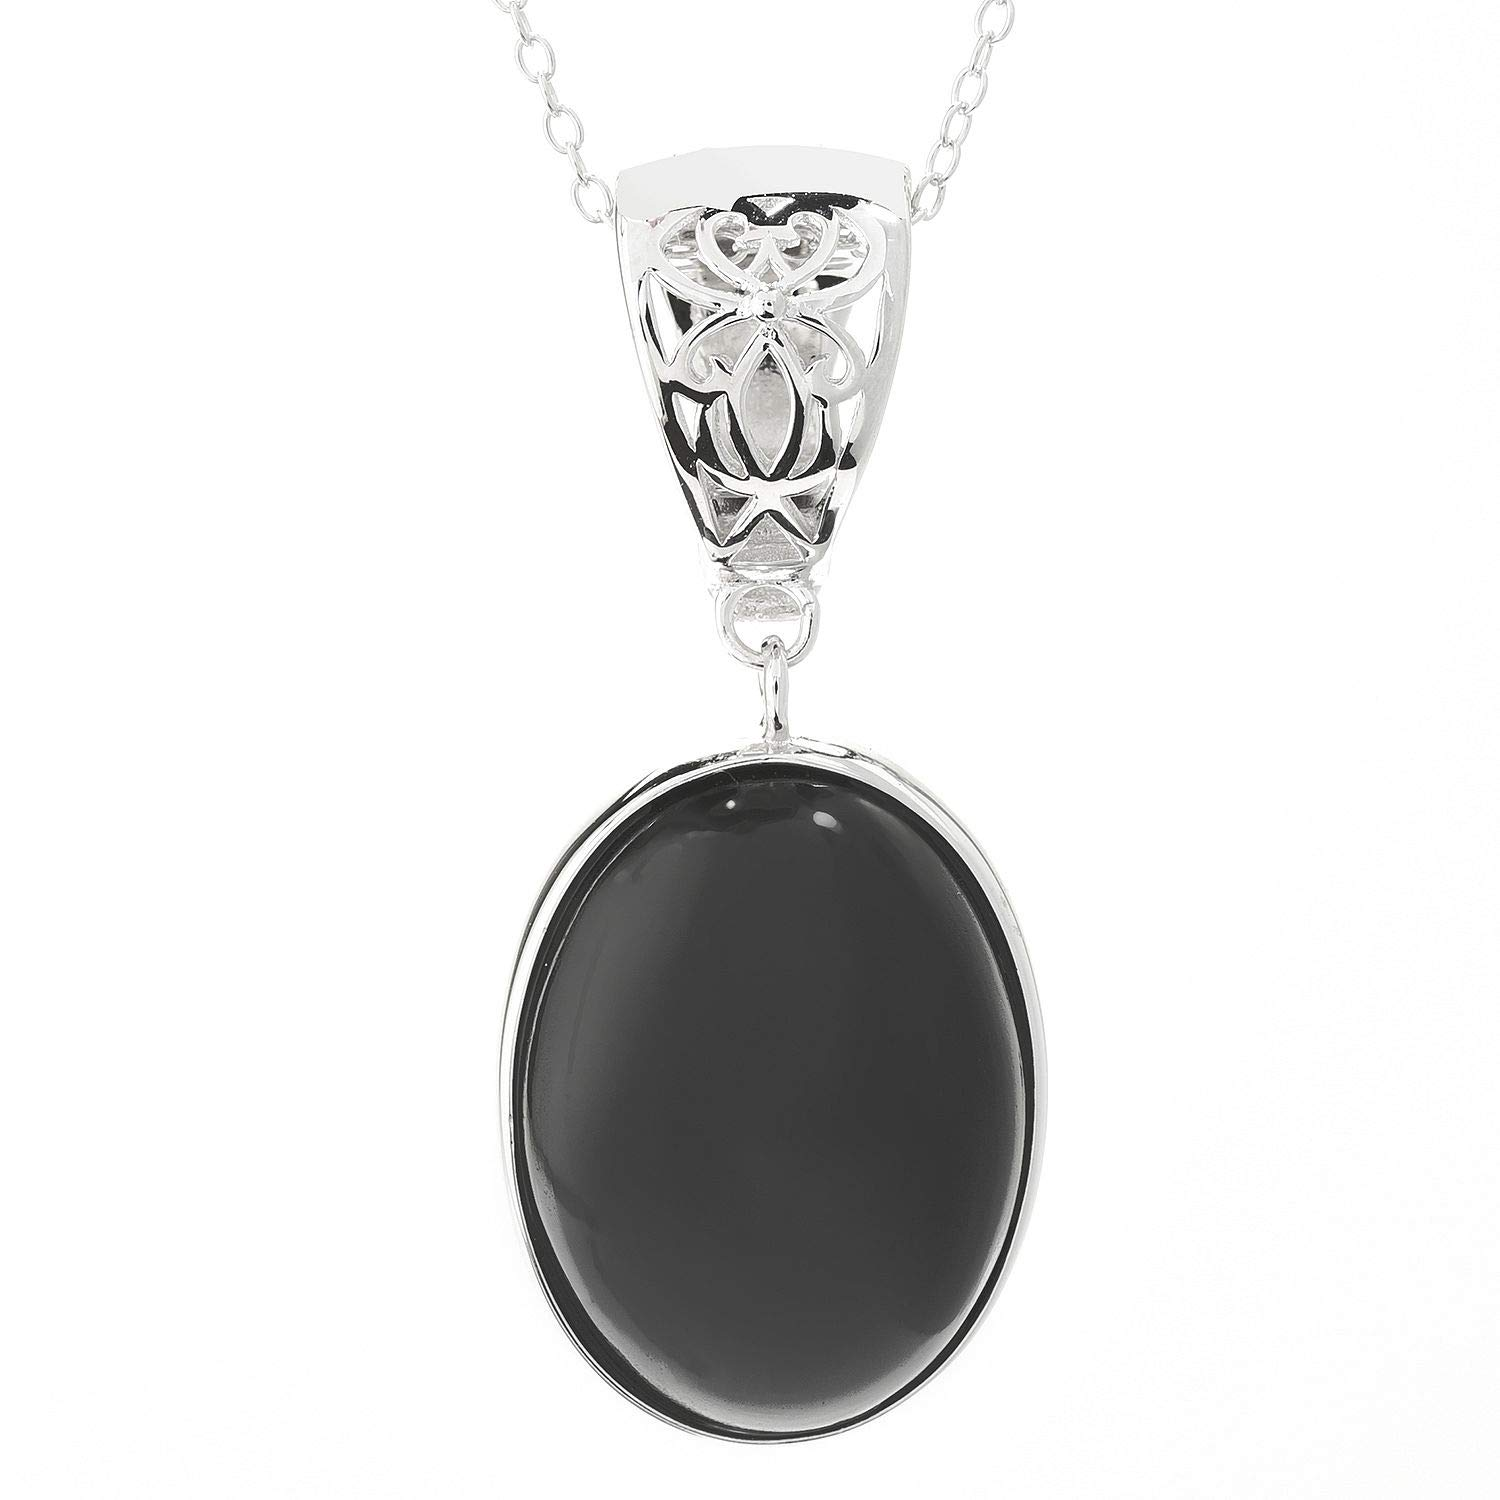 Pinctore Sterling Silver 20 x 15mm Oval Black Spinel Enhancer Pendant w// 18 Chain